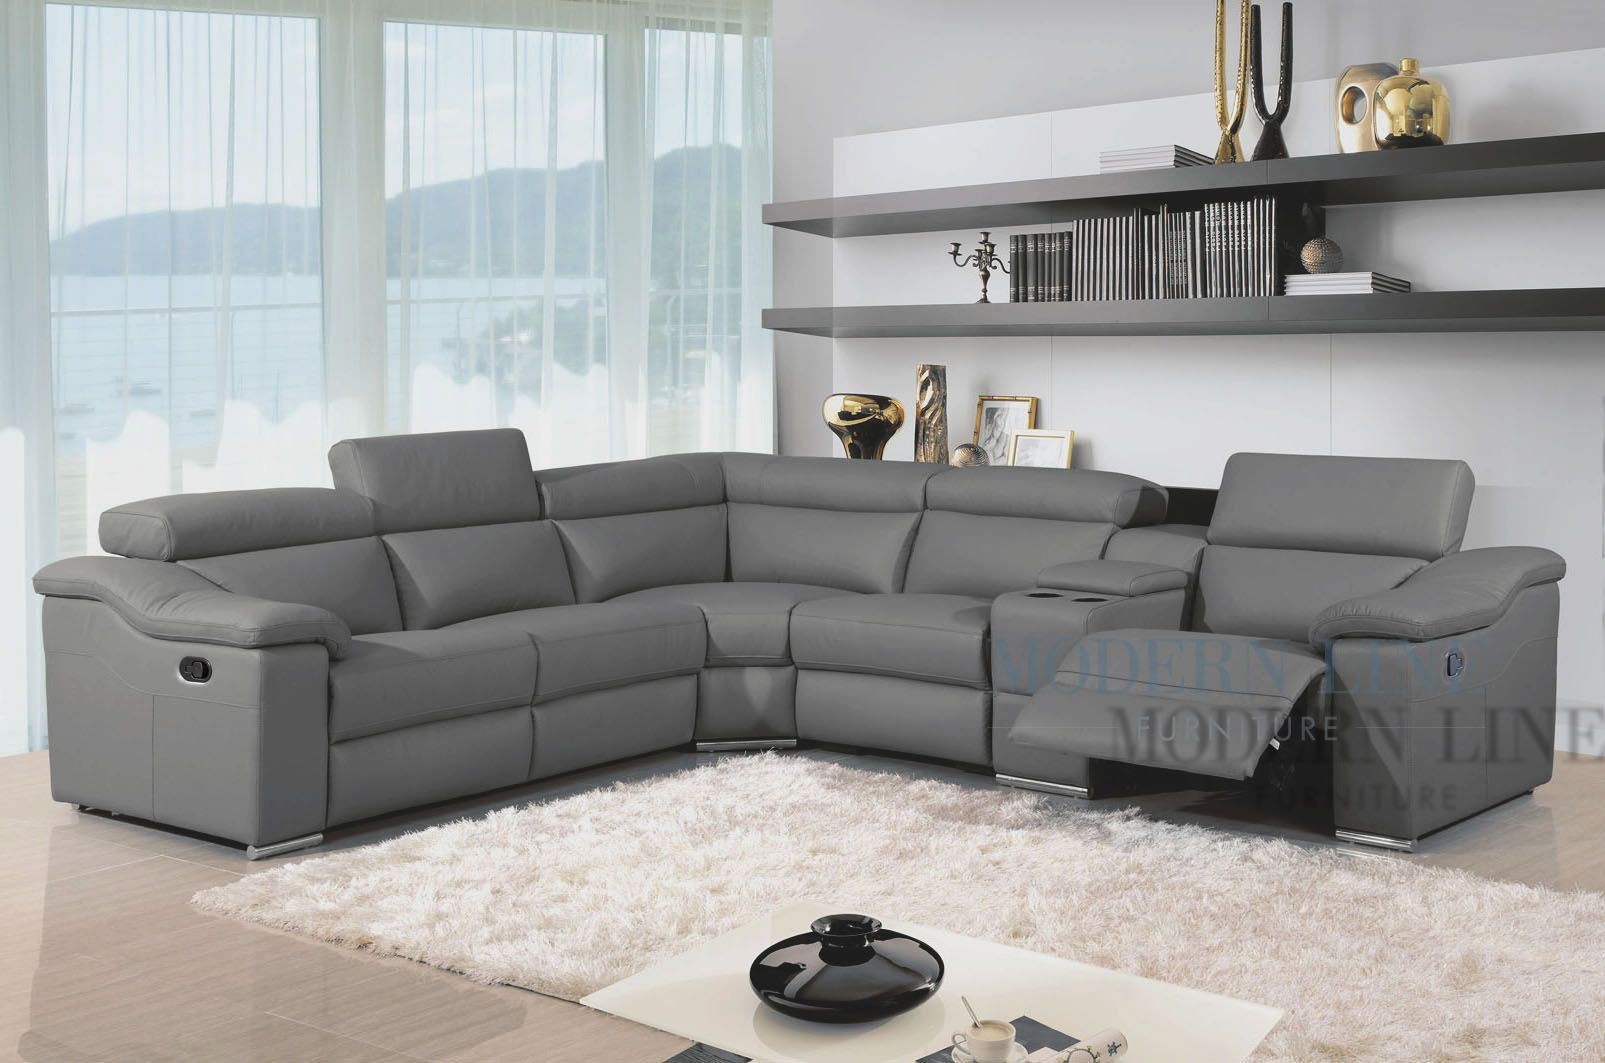 Awesome Great Charcoal Grey Sectional Sofa 29 About Remodel Home Design Ideas With